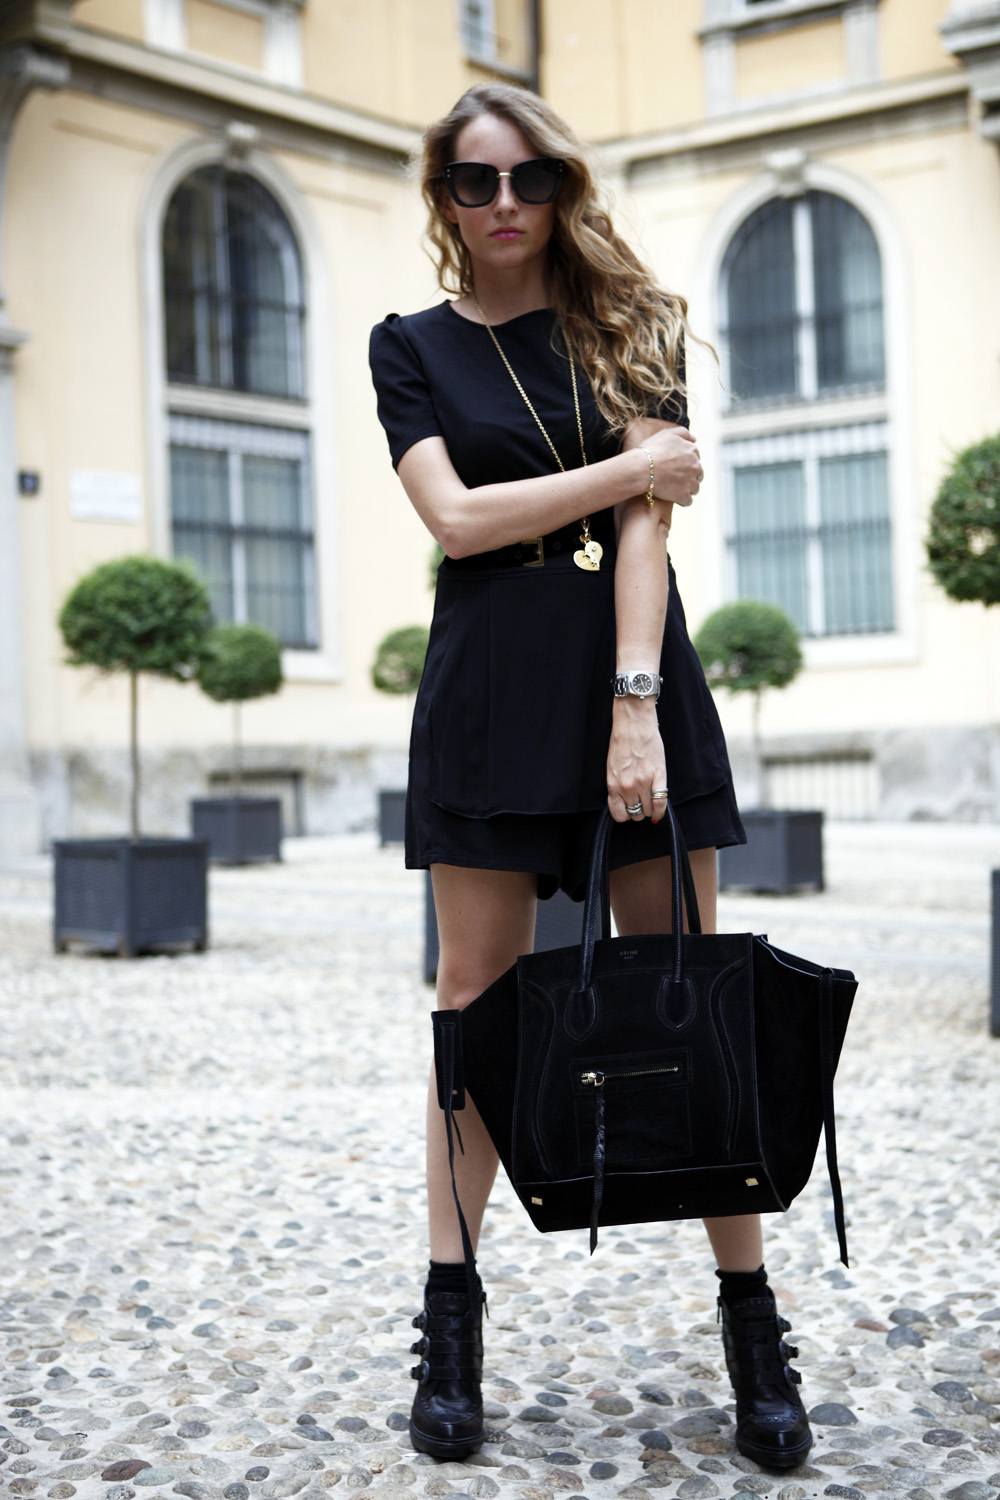 Virginia Varinelli is wearing all black shorts salopette from Stefanel, shoes from Ash, sunglasses from Marc Jacobs and bag from Celine